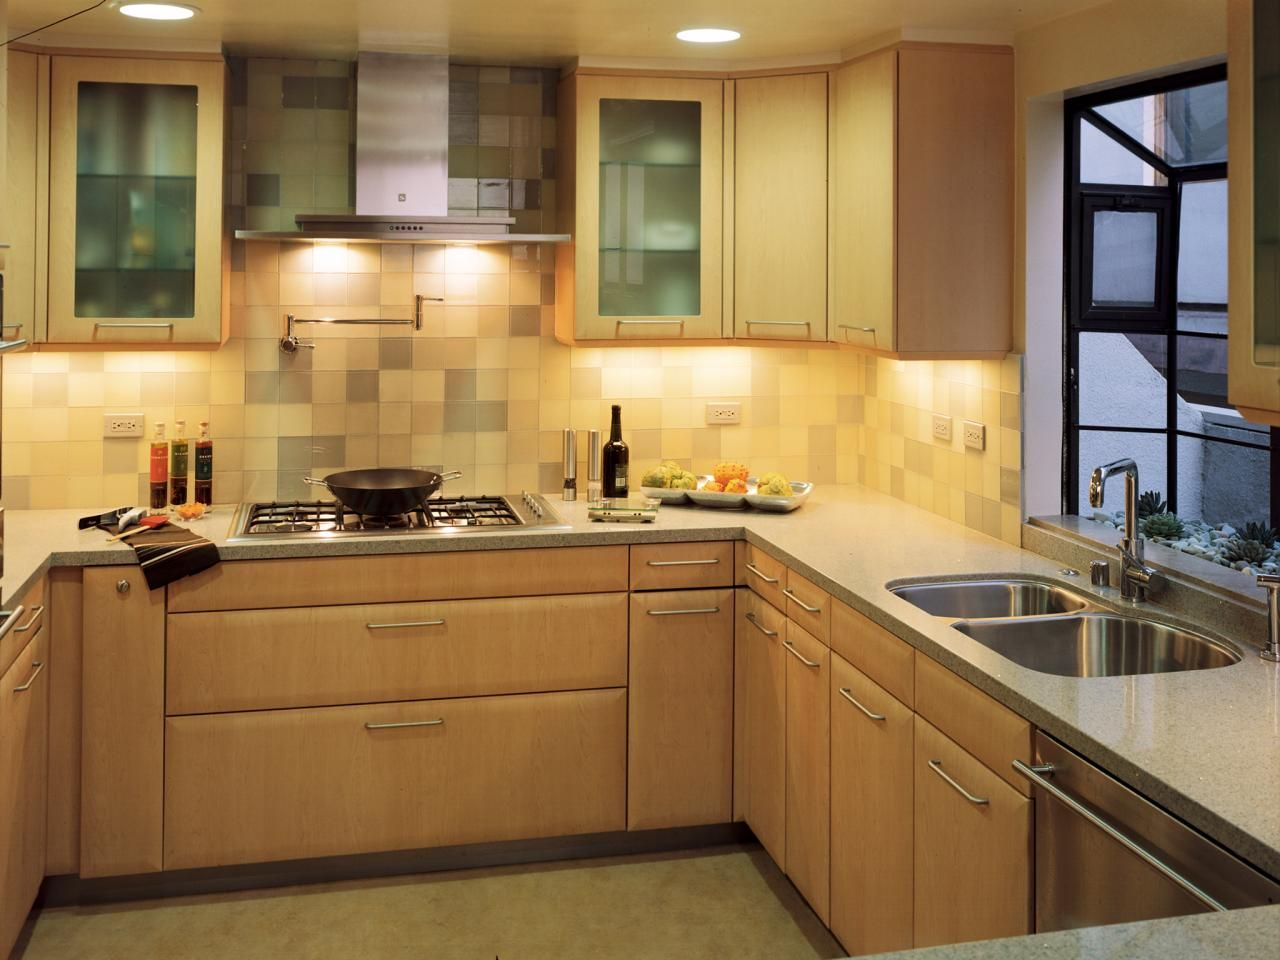 Kchen Cabinet Design Plans Neubertweb Home Design. Kitchen Cabinets Design For Small Space. Stainless Steel Dishwasher and White Cabinets Plus Cool Big. Smart Wise Space Utilization for Very Small Kitchens Http